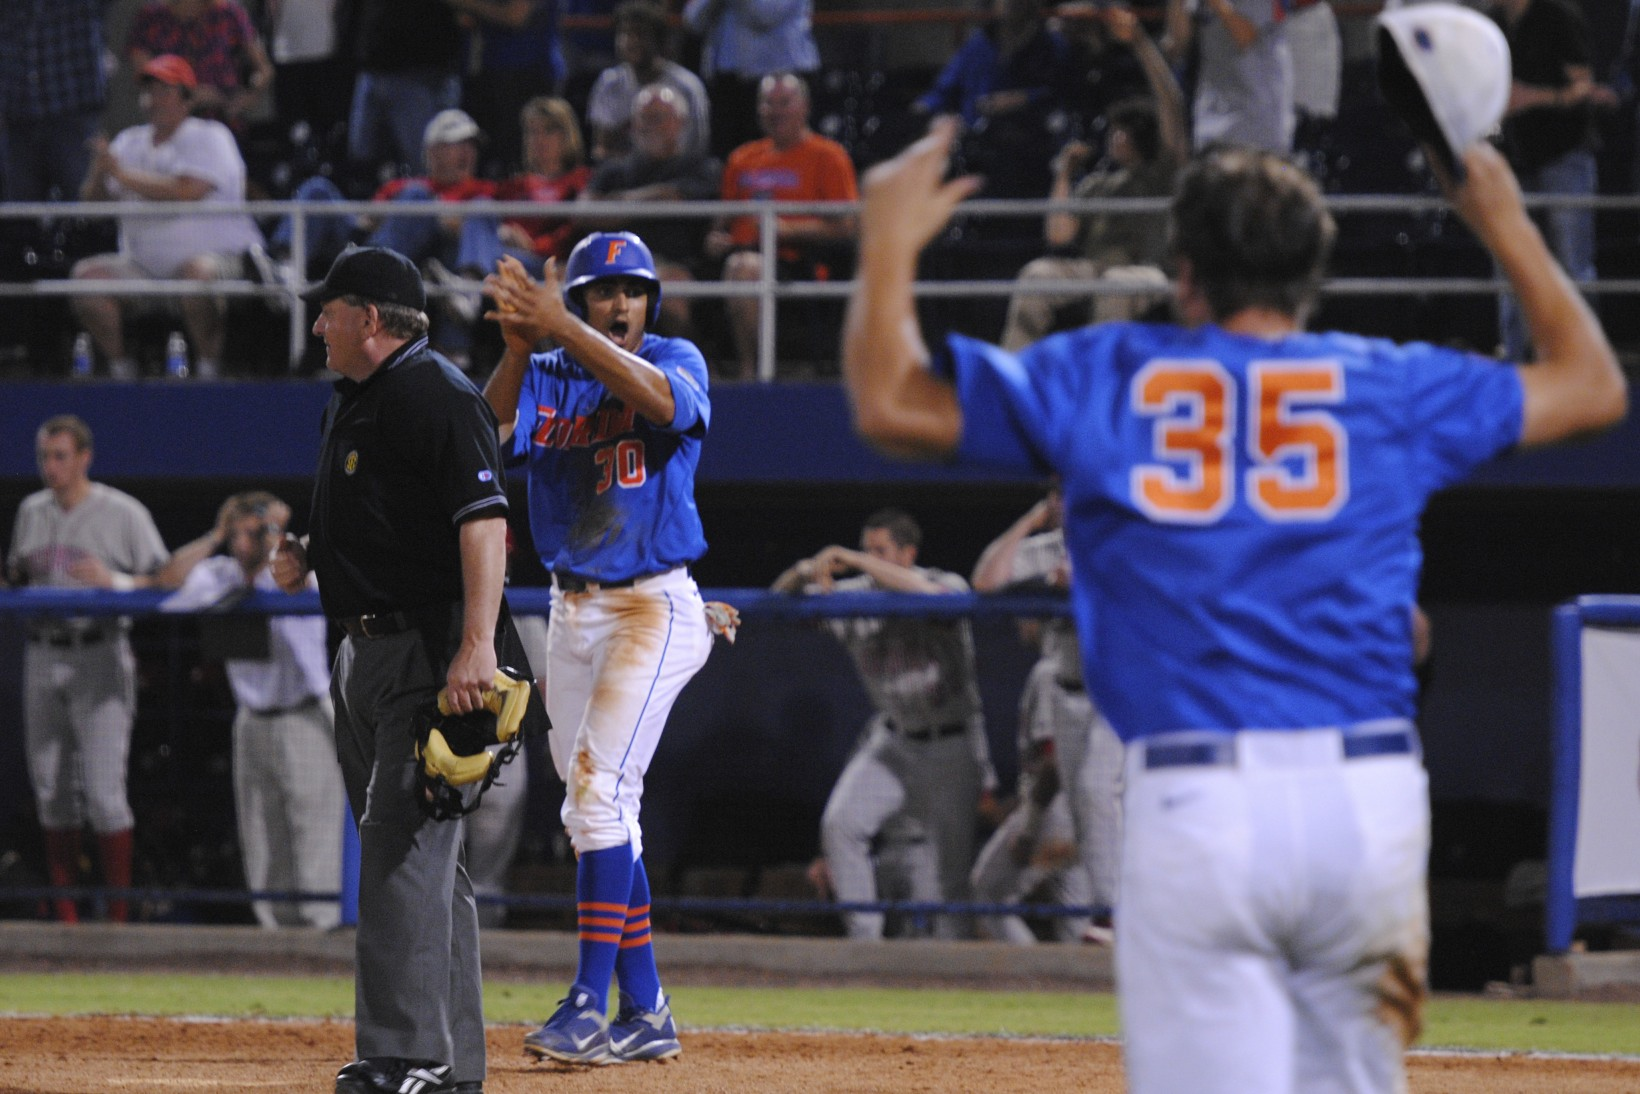 Vaskash Ramjit scores the winning run for the Gators at the bottom of the 16th inning Friday night.